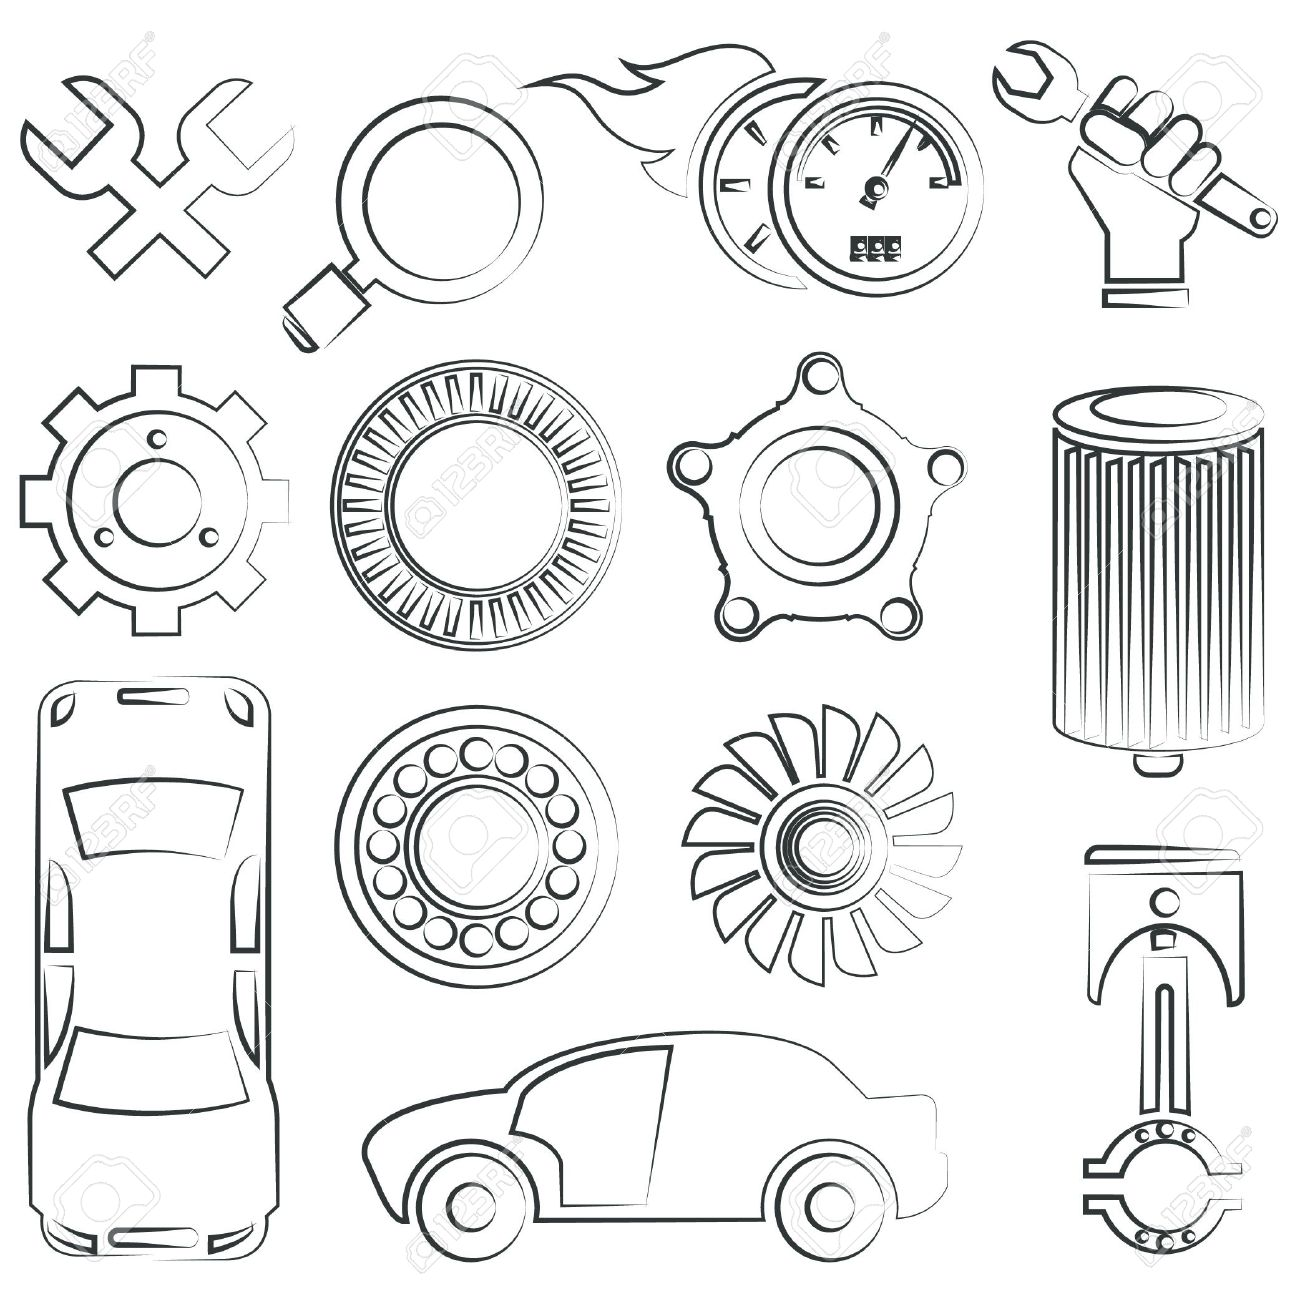 Auto Parts Drawing At Free For Personal Use Jeep Engine Diagram Car And Component 1300x1300 Sketched Set Royalty Cliparts Vectors Stock